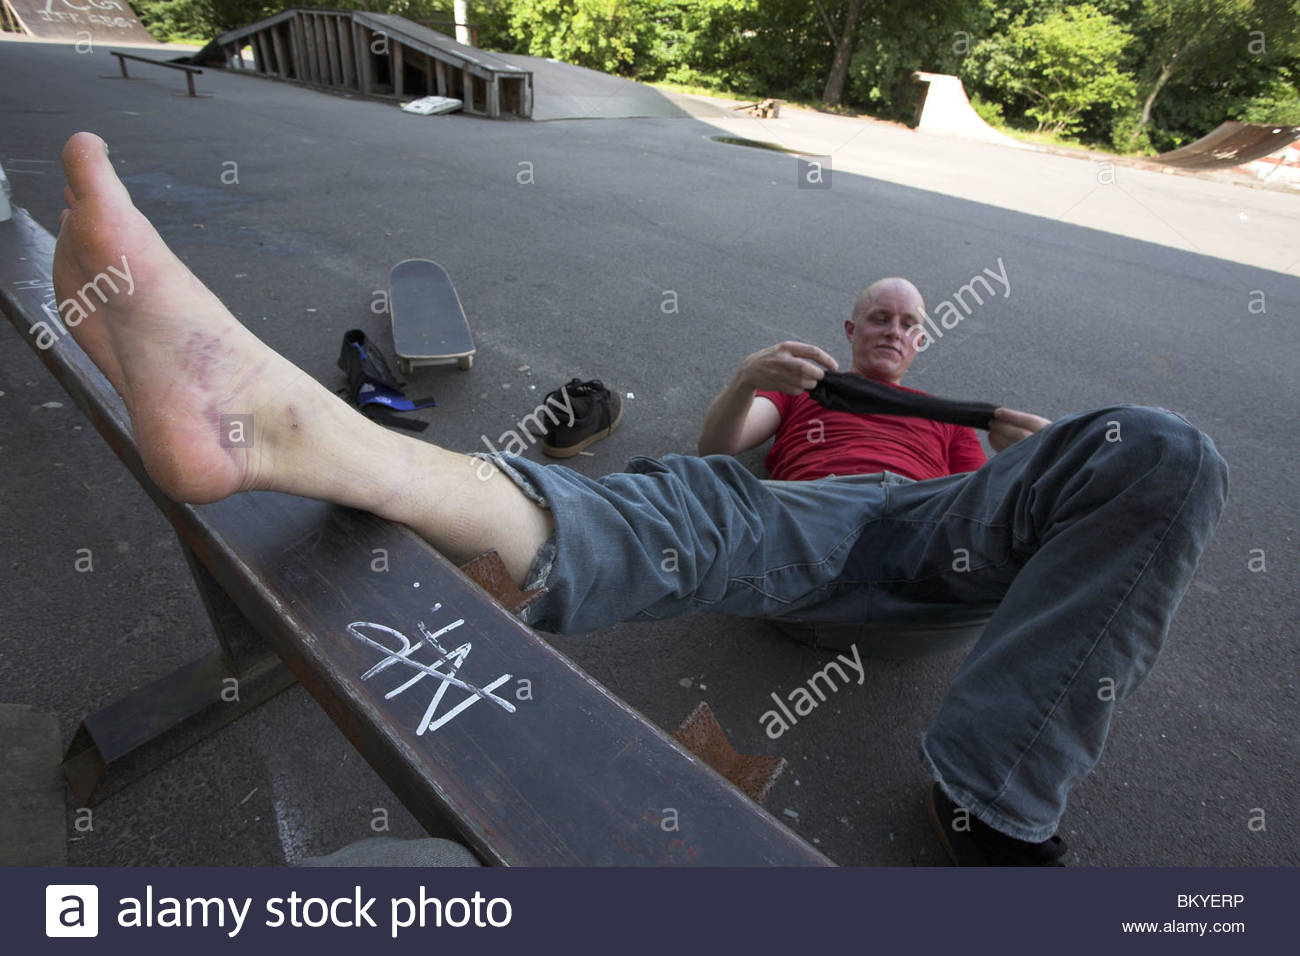 Skateboarder Fabian Nilsson with an injured left foot.  - Stock Image